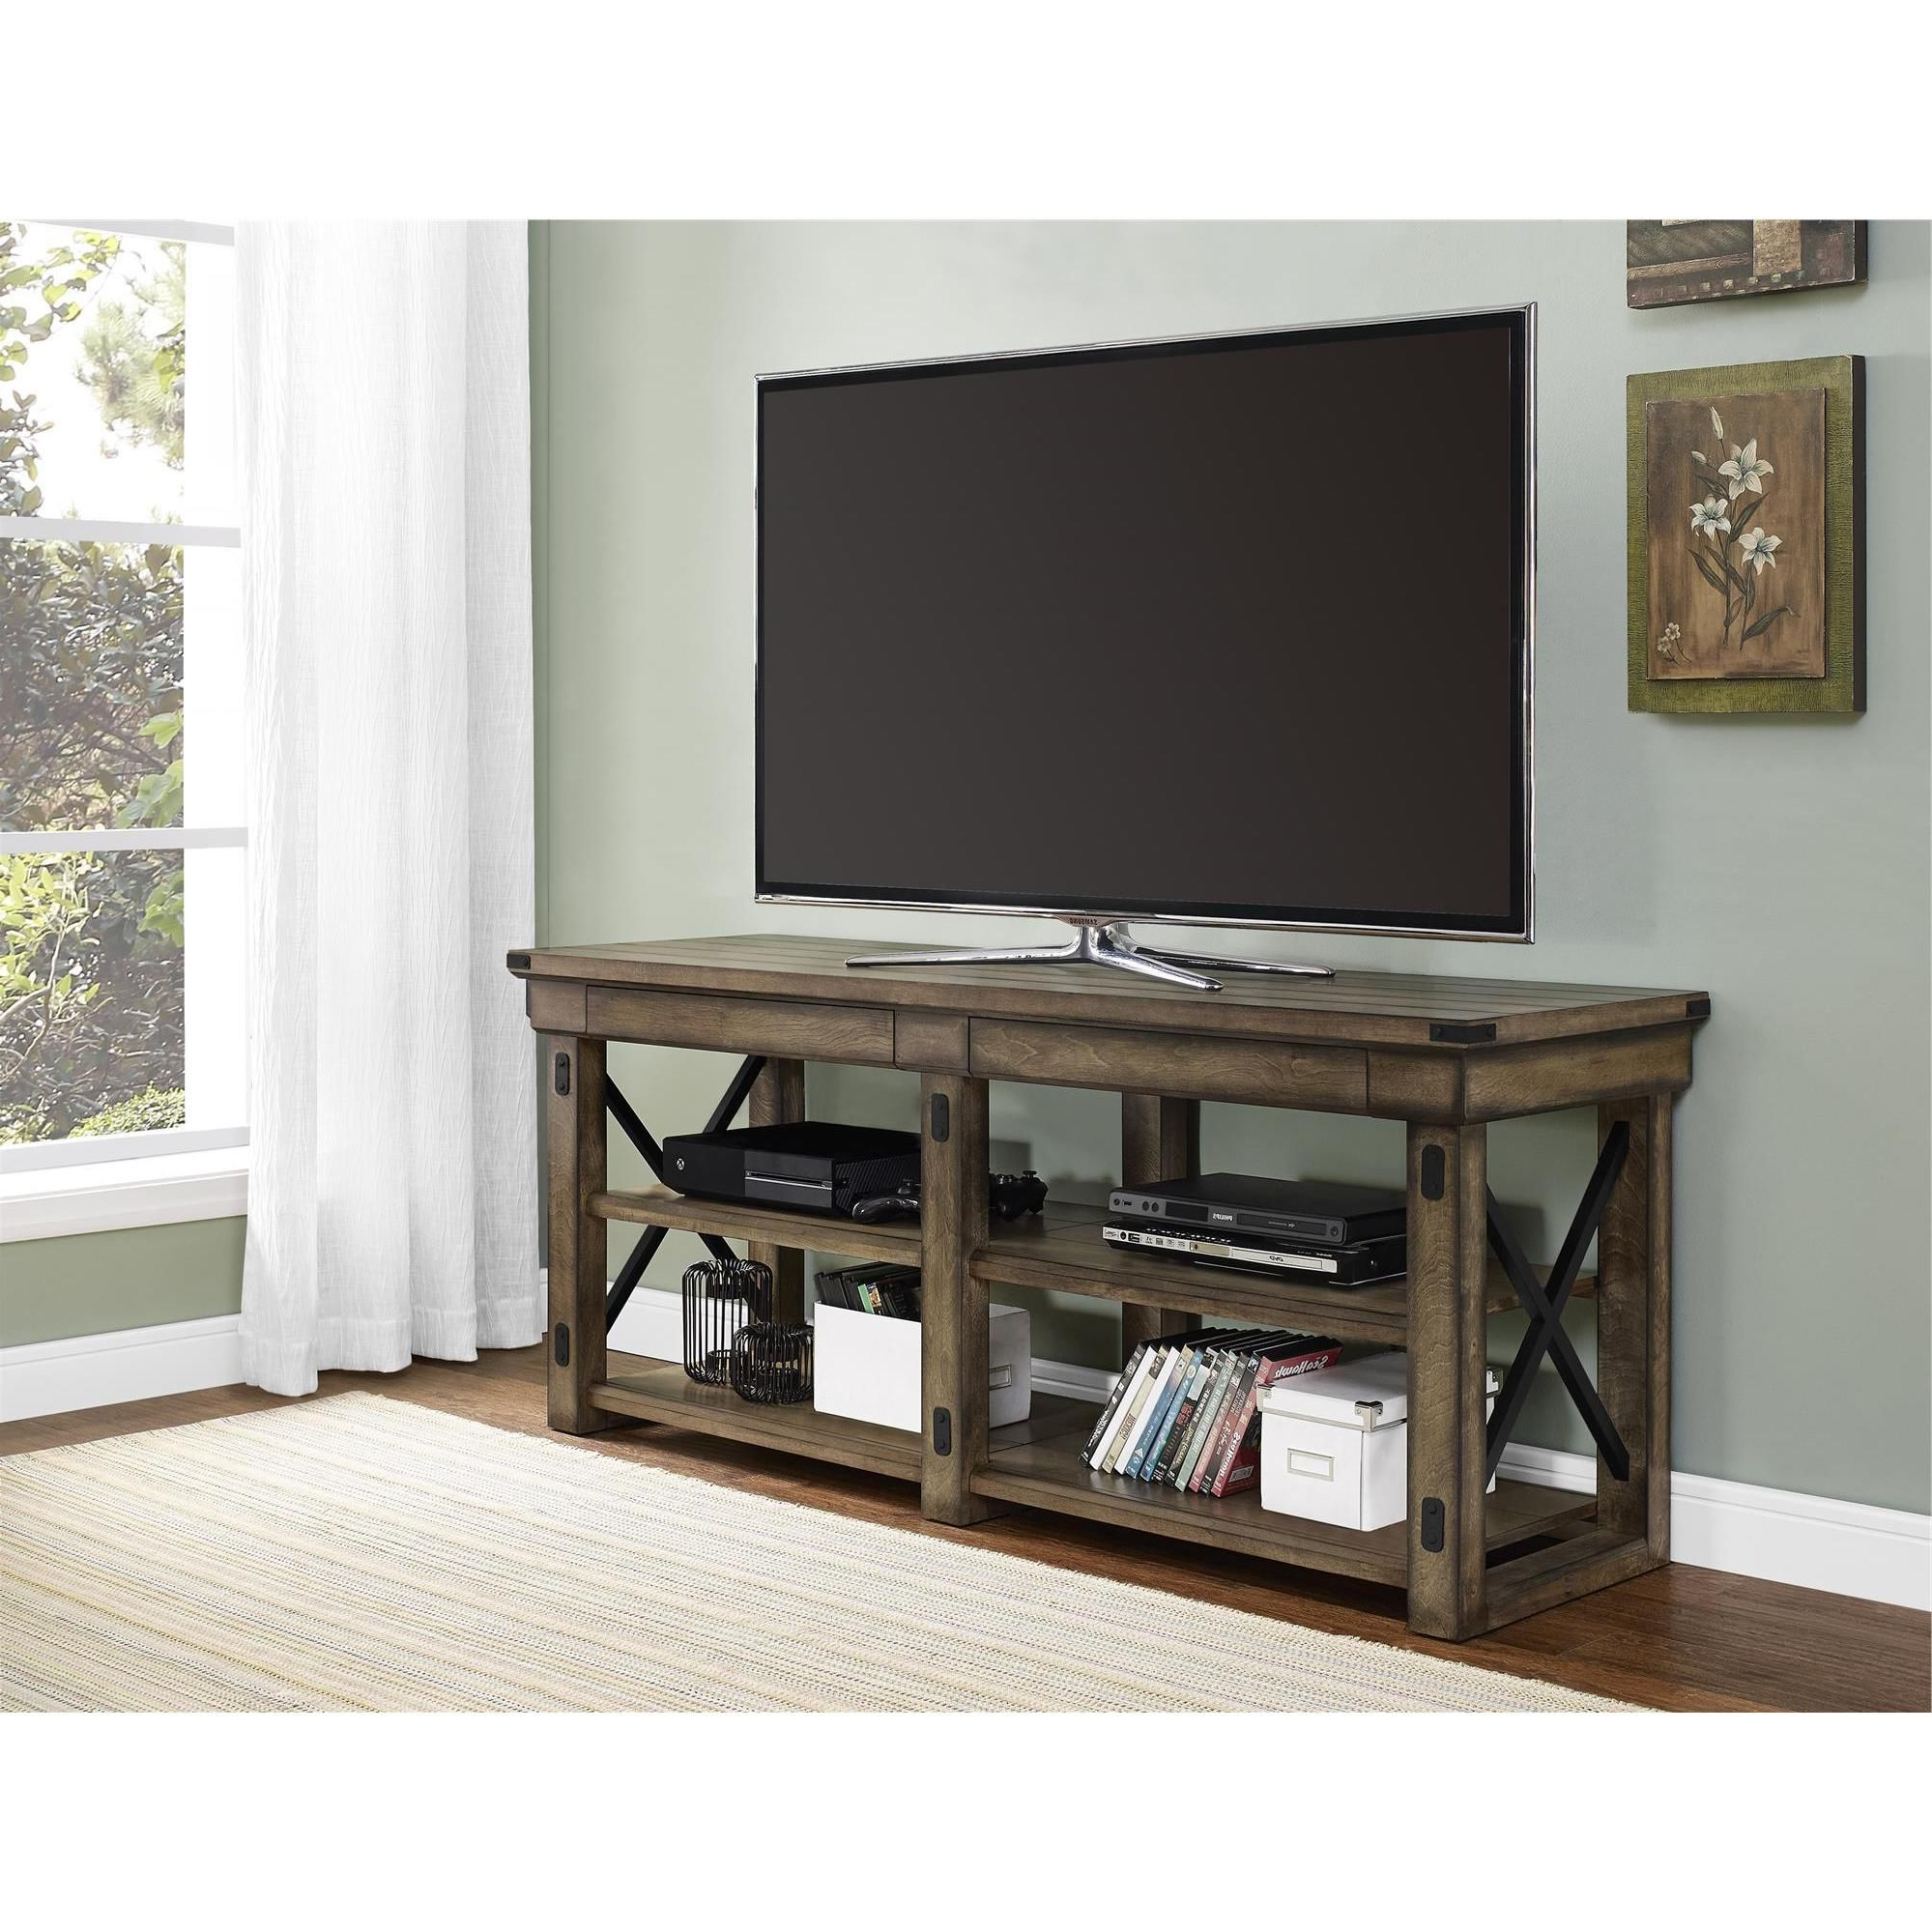 Bring Beauty And Better Organization Into Your Living Room With The In Well Liked Sinclair White 68 Inch Tv Stands (View 2 of 20)